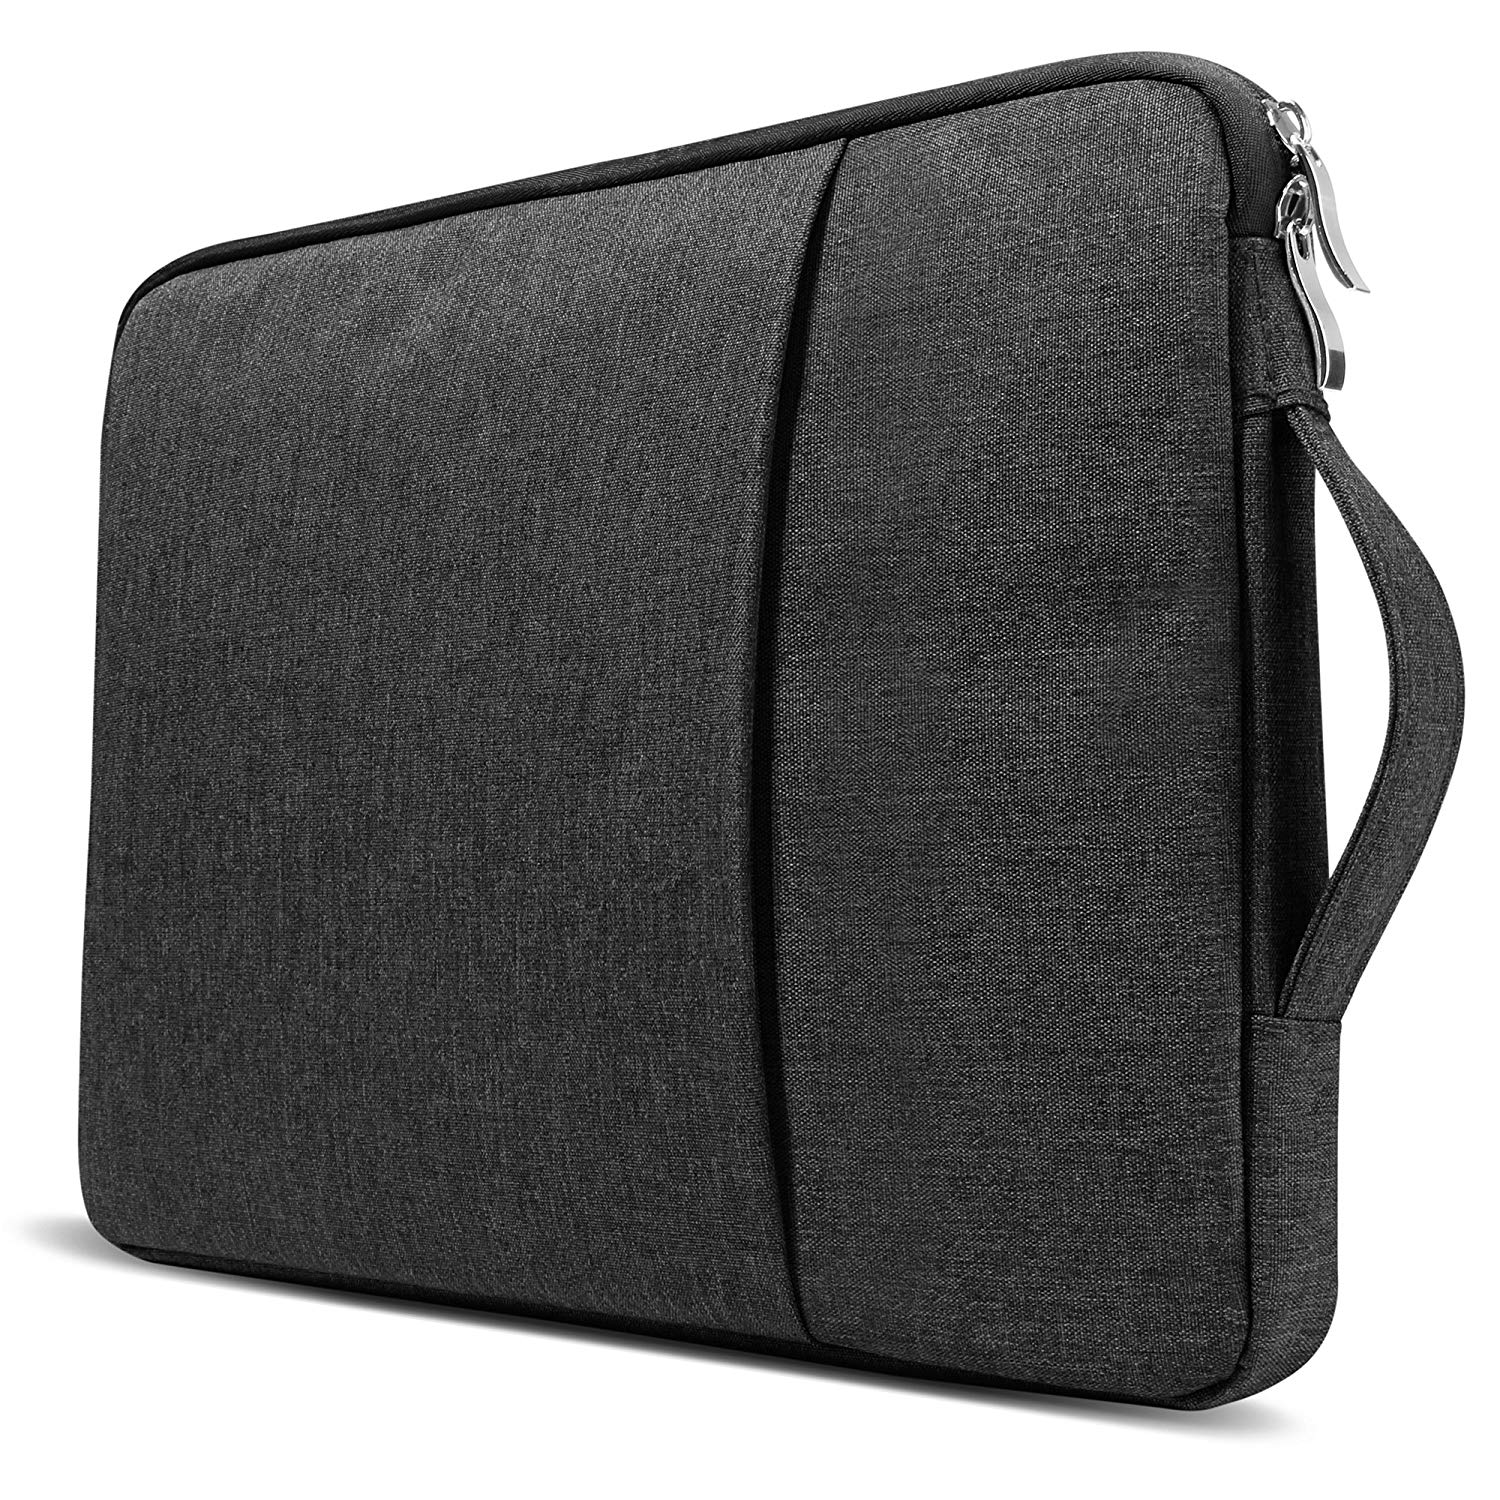 Laptop Sleeve 13 For MacBook Pro 13 Case Laptop Bag Cover 13.3 11.6 12.3 15.4 Computer Bag For Mac Book Air Notebook Case Bags